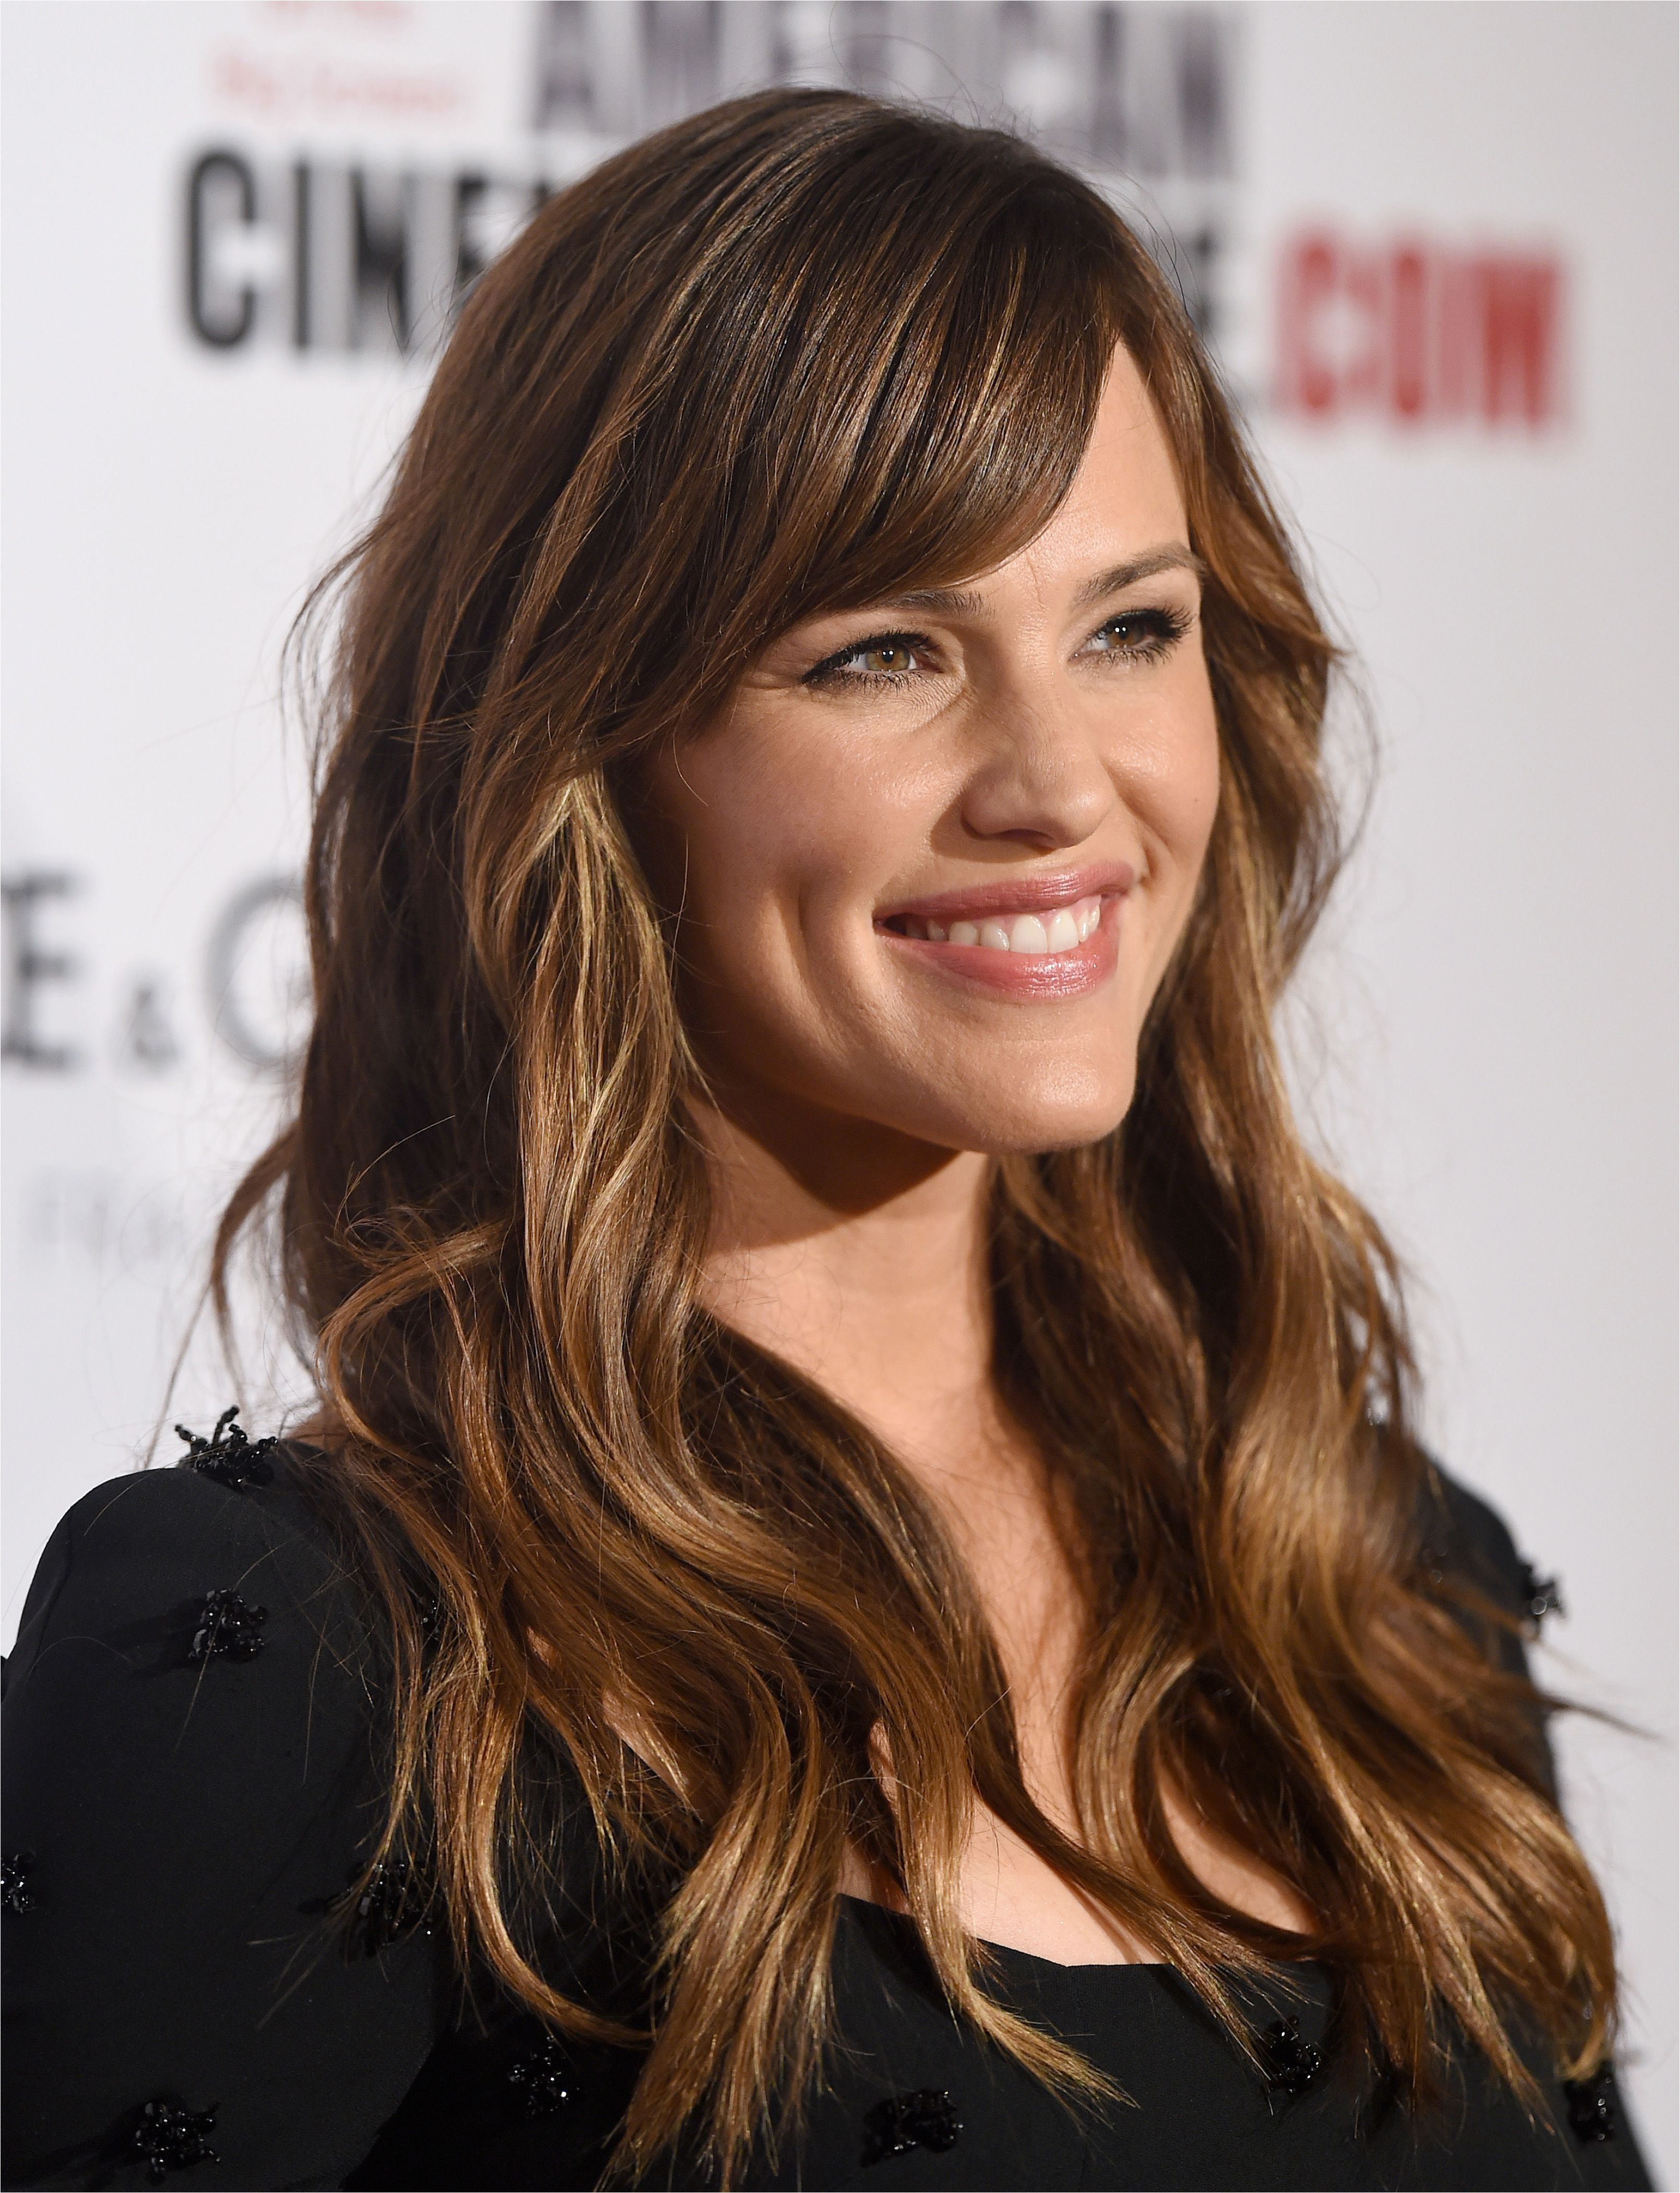 jennifer garner hair 56a df78cafdaa276e8